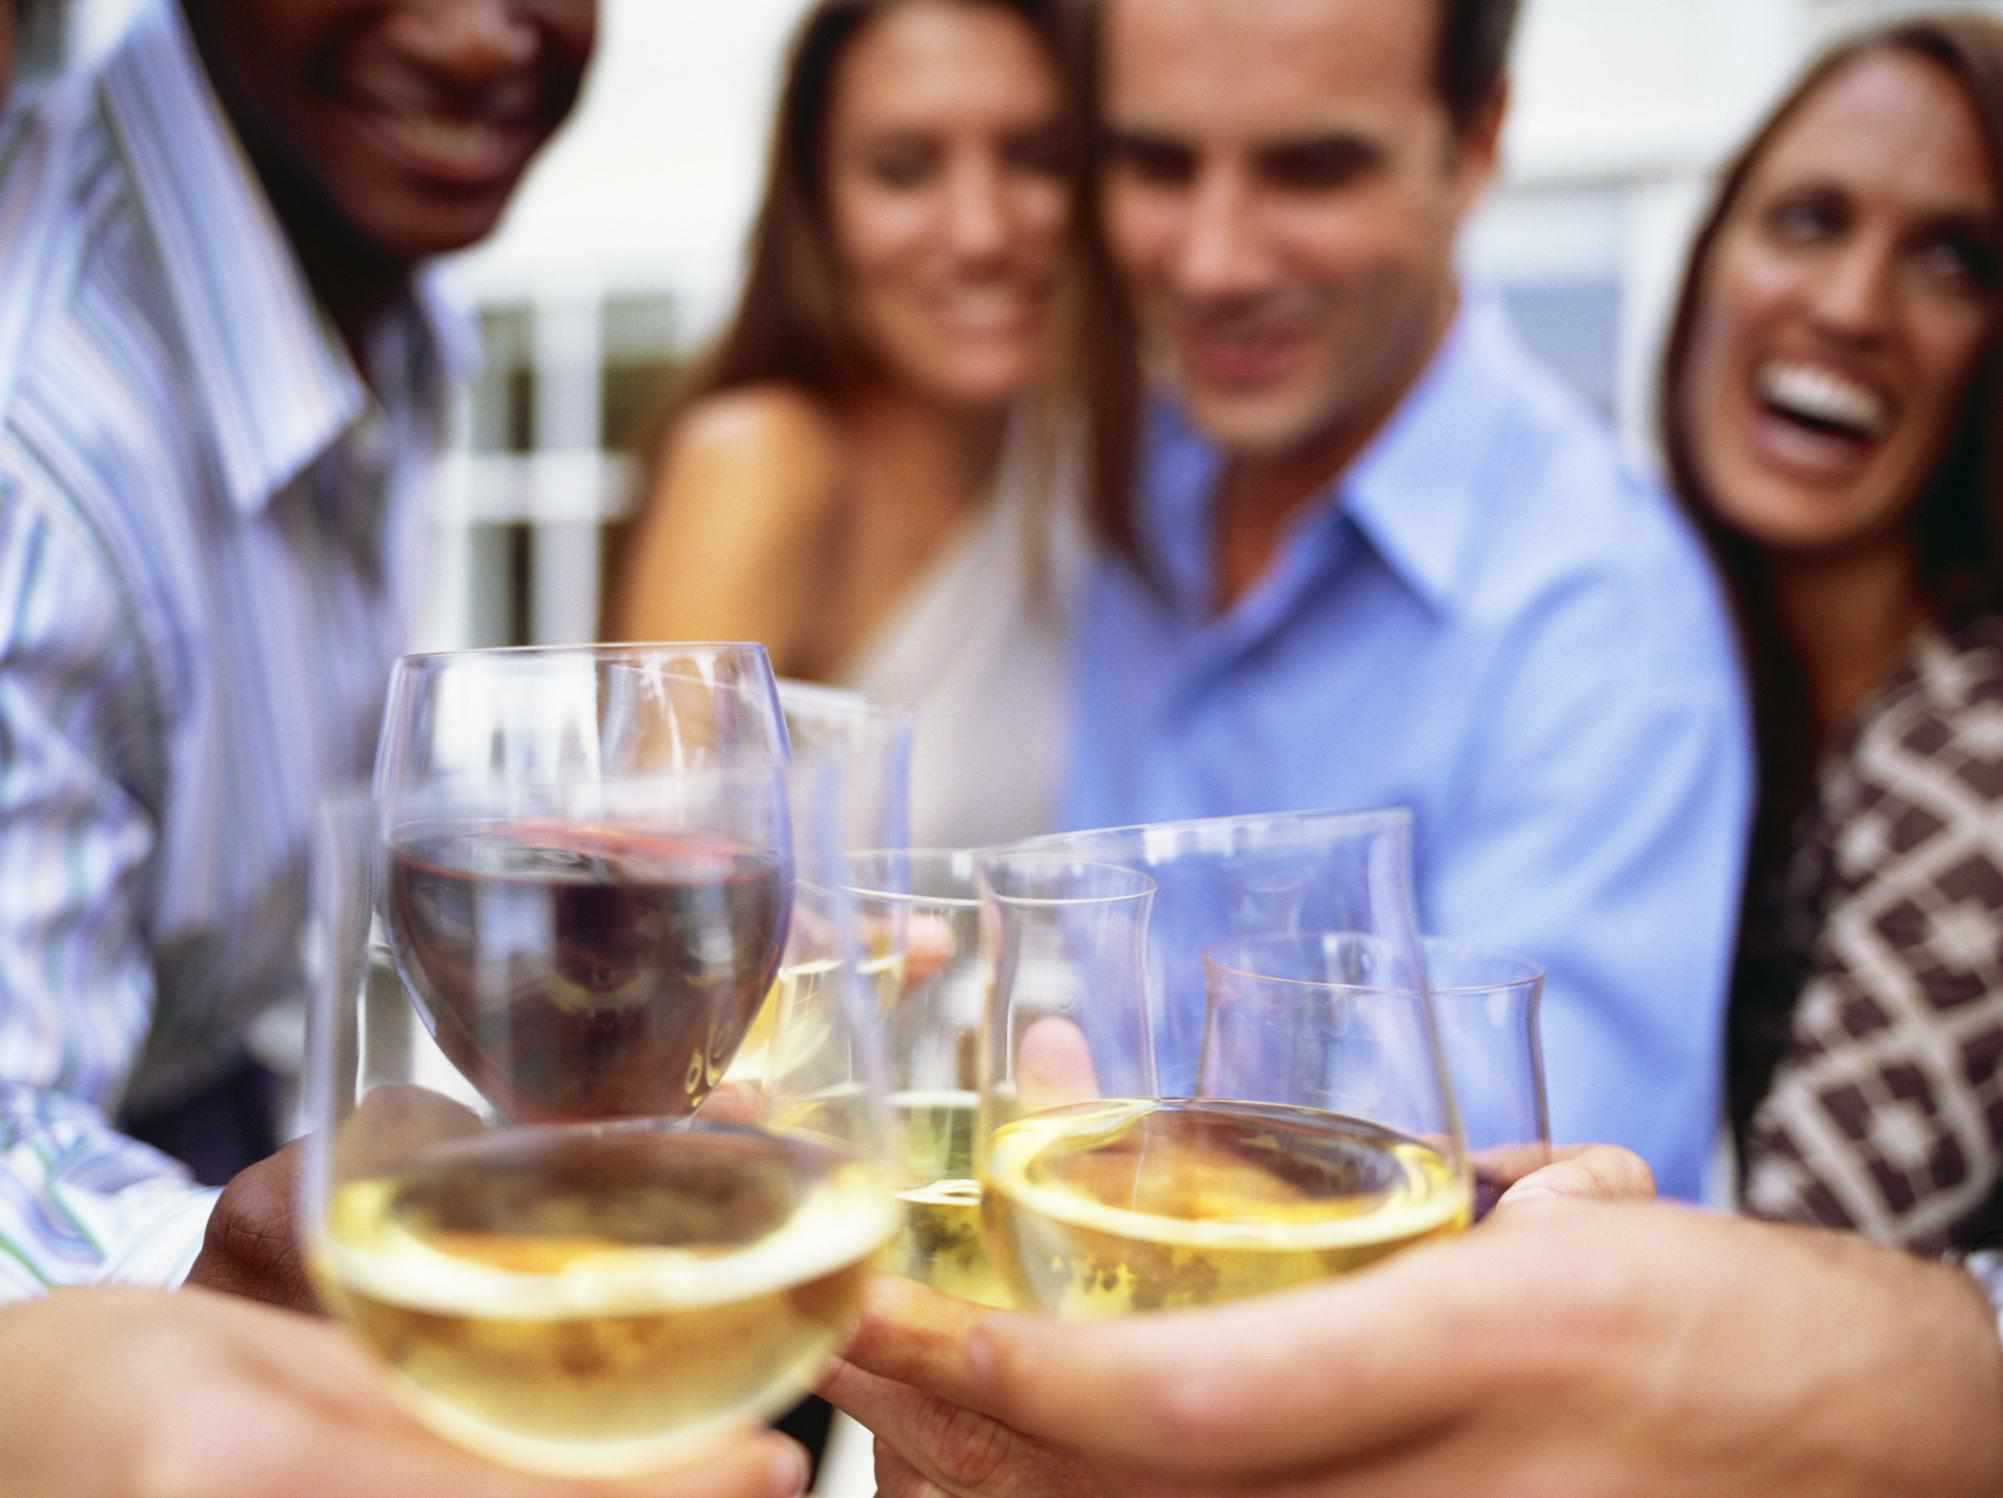 Two couples with each person holding a wine glass filled with white and red wine, and they're toasting the glasses.